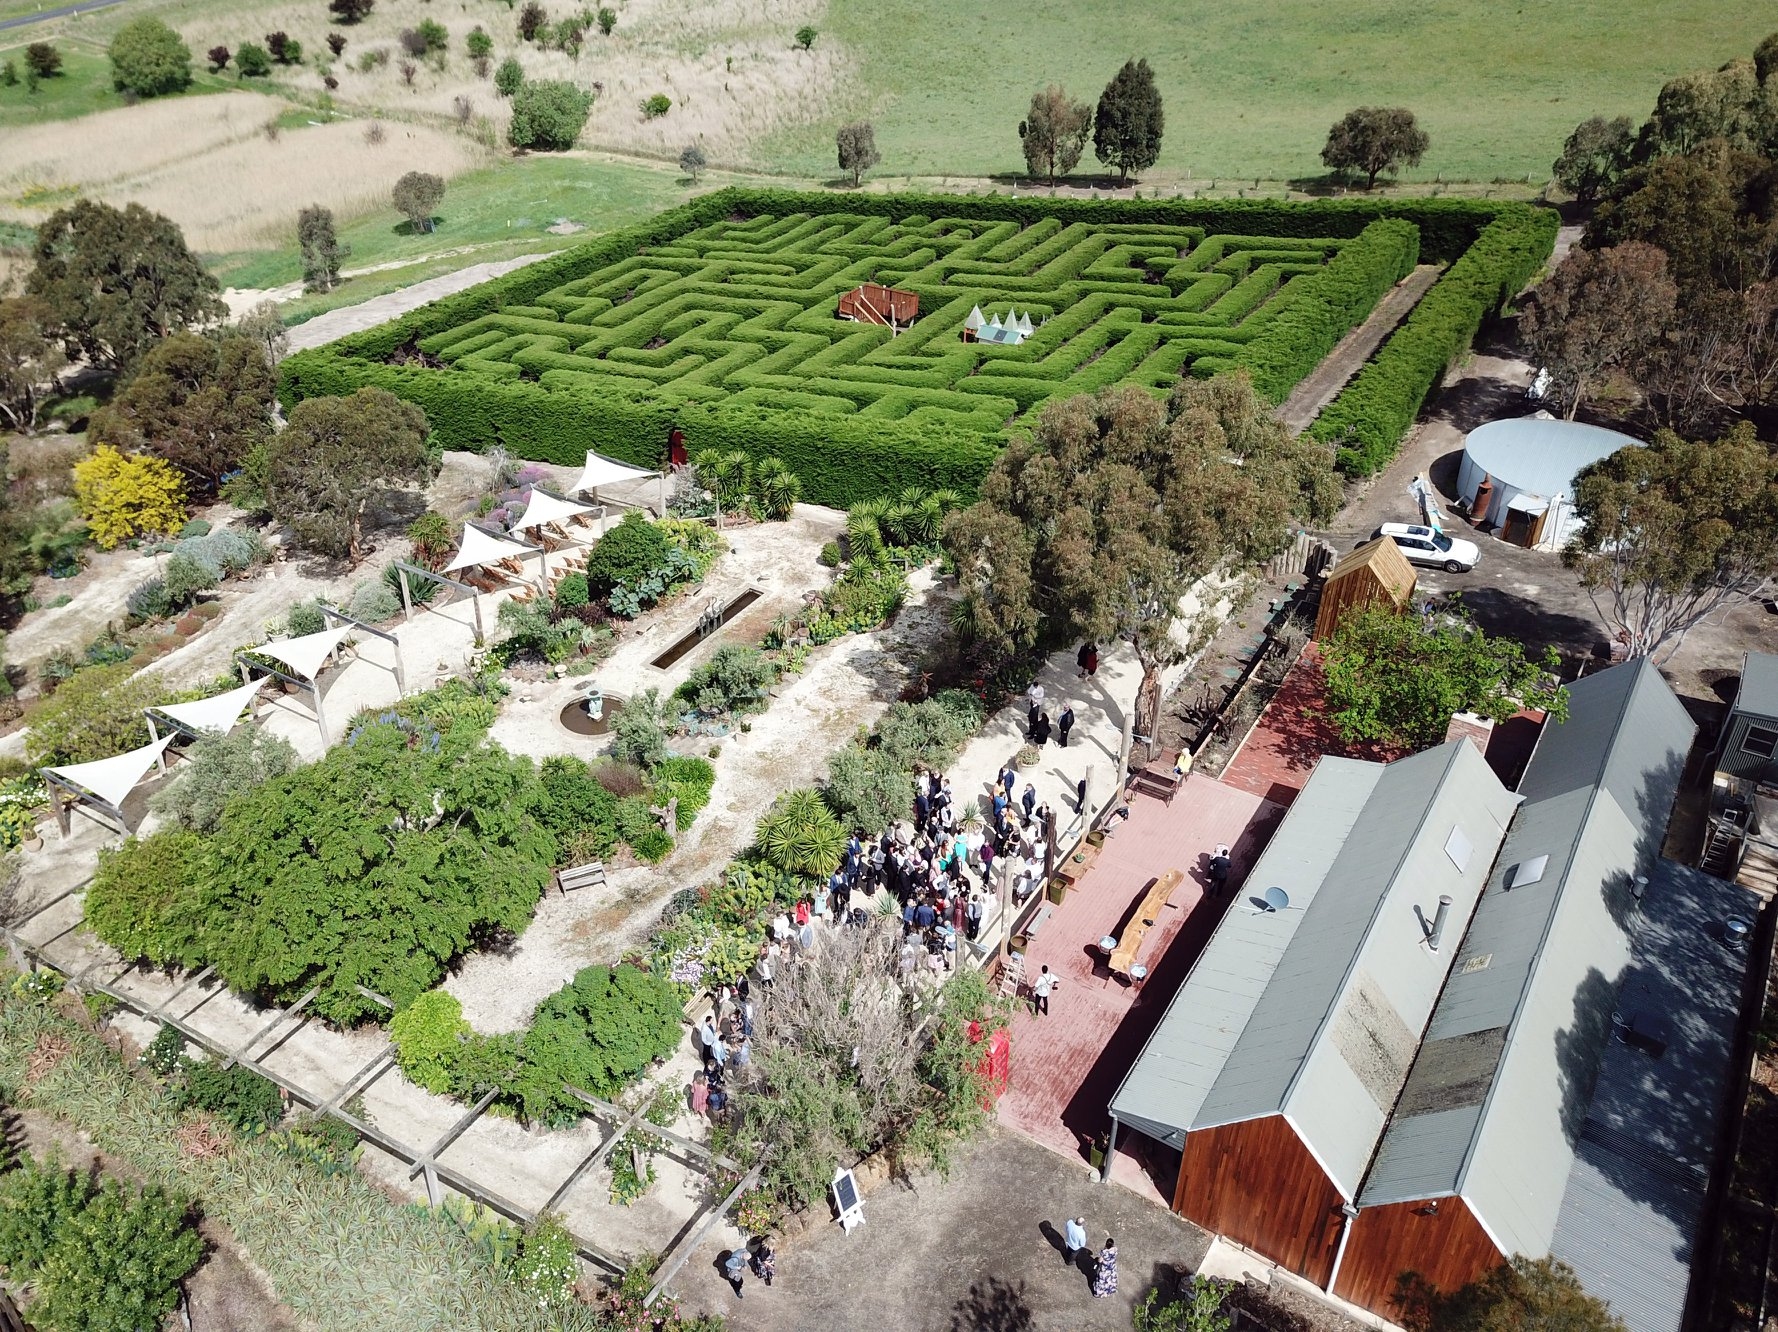 Aerial photo of cafe, maze and gardens